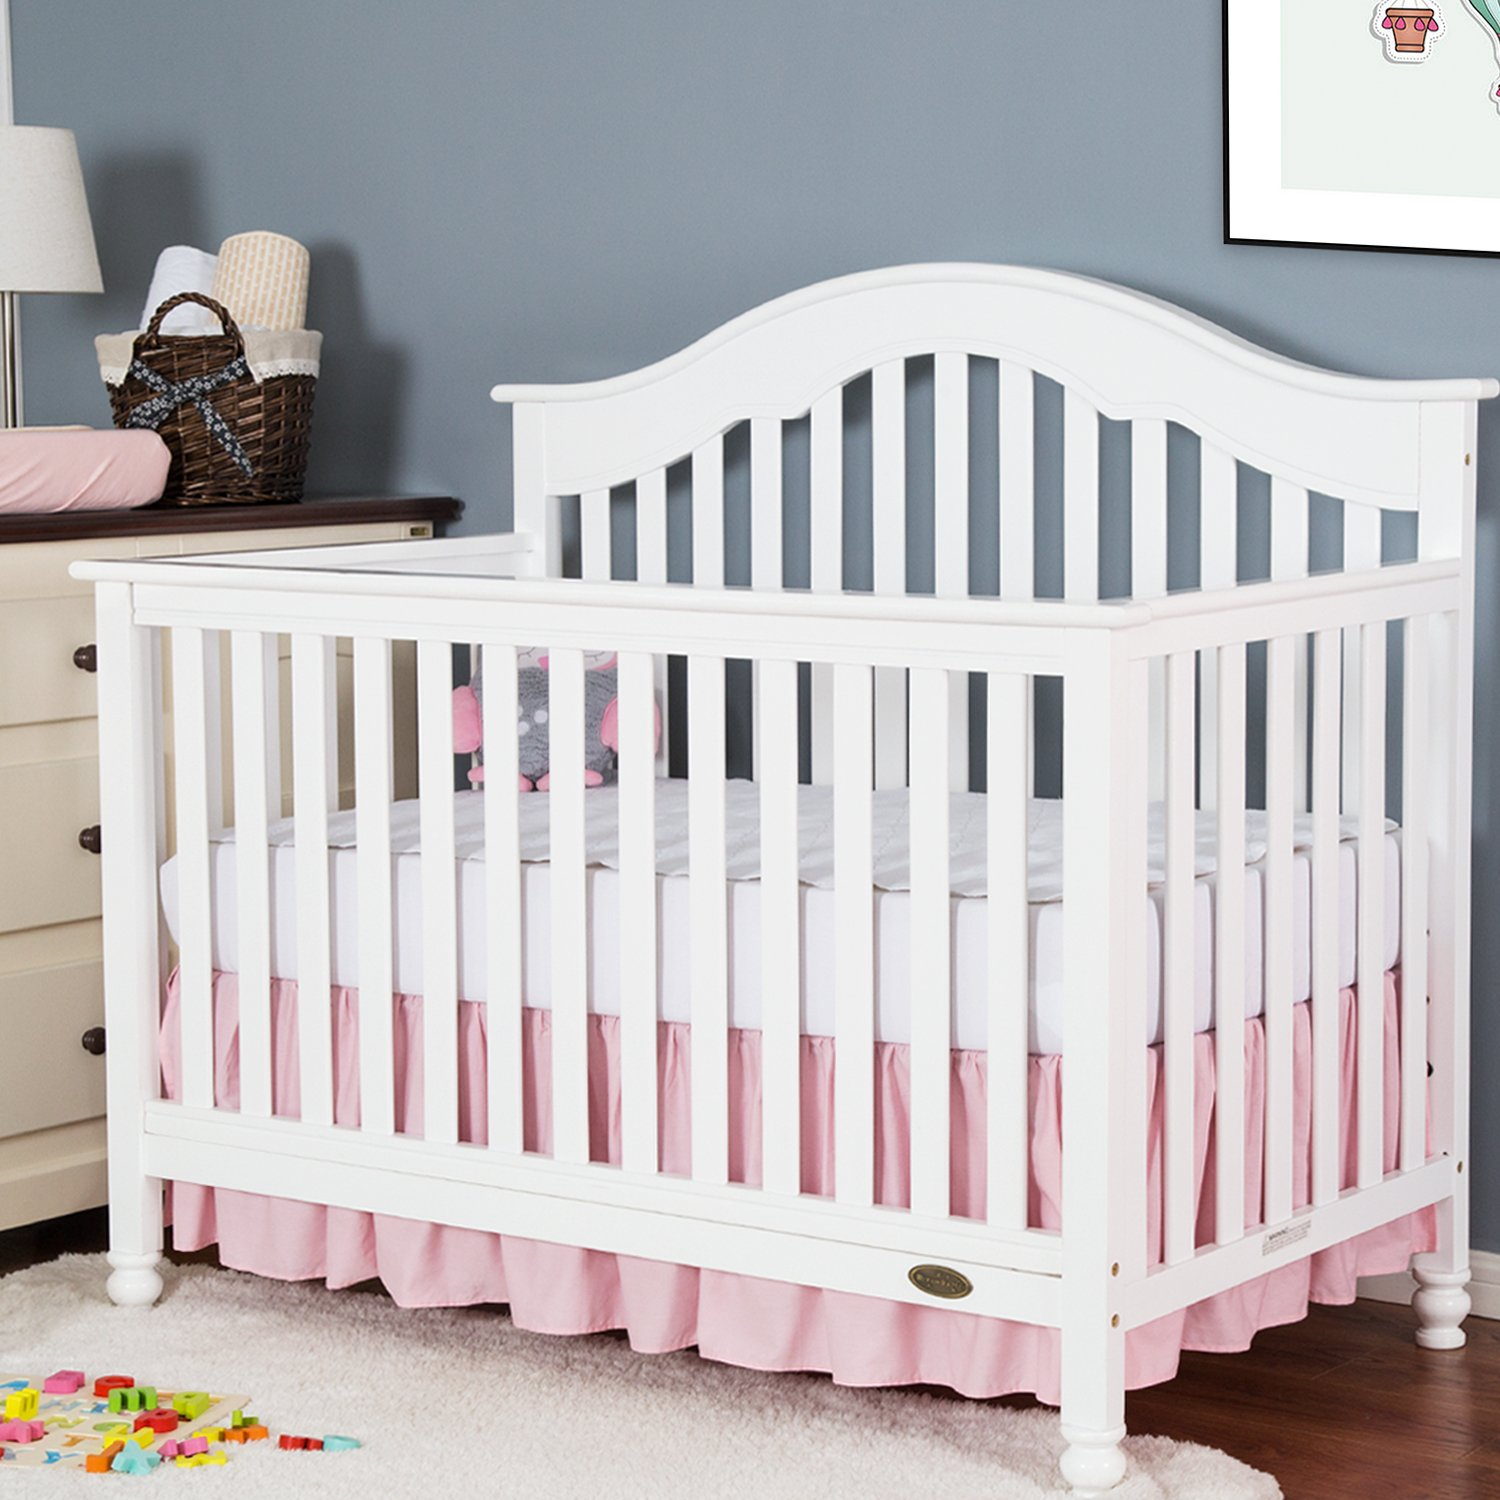 Amazon Com Tillyou 1 Pack Padded Baby Crib Rail Cover